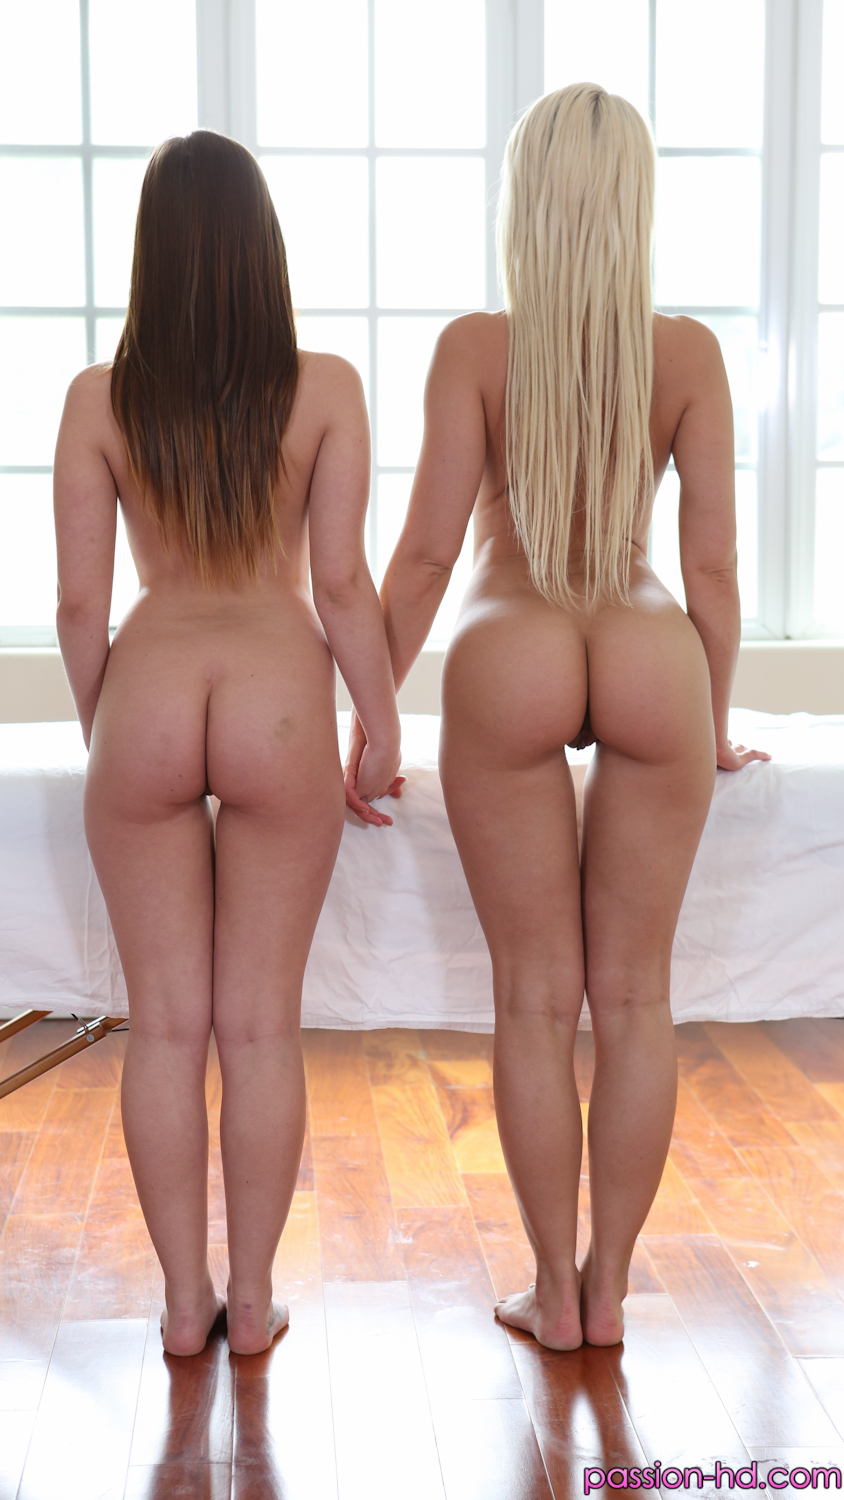 imagepost videos teddi-and-anikka-in-double-massage teddi-and-anikka-in-double-massage-005 jpg